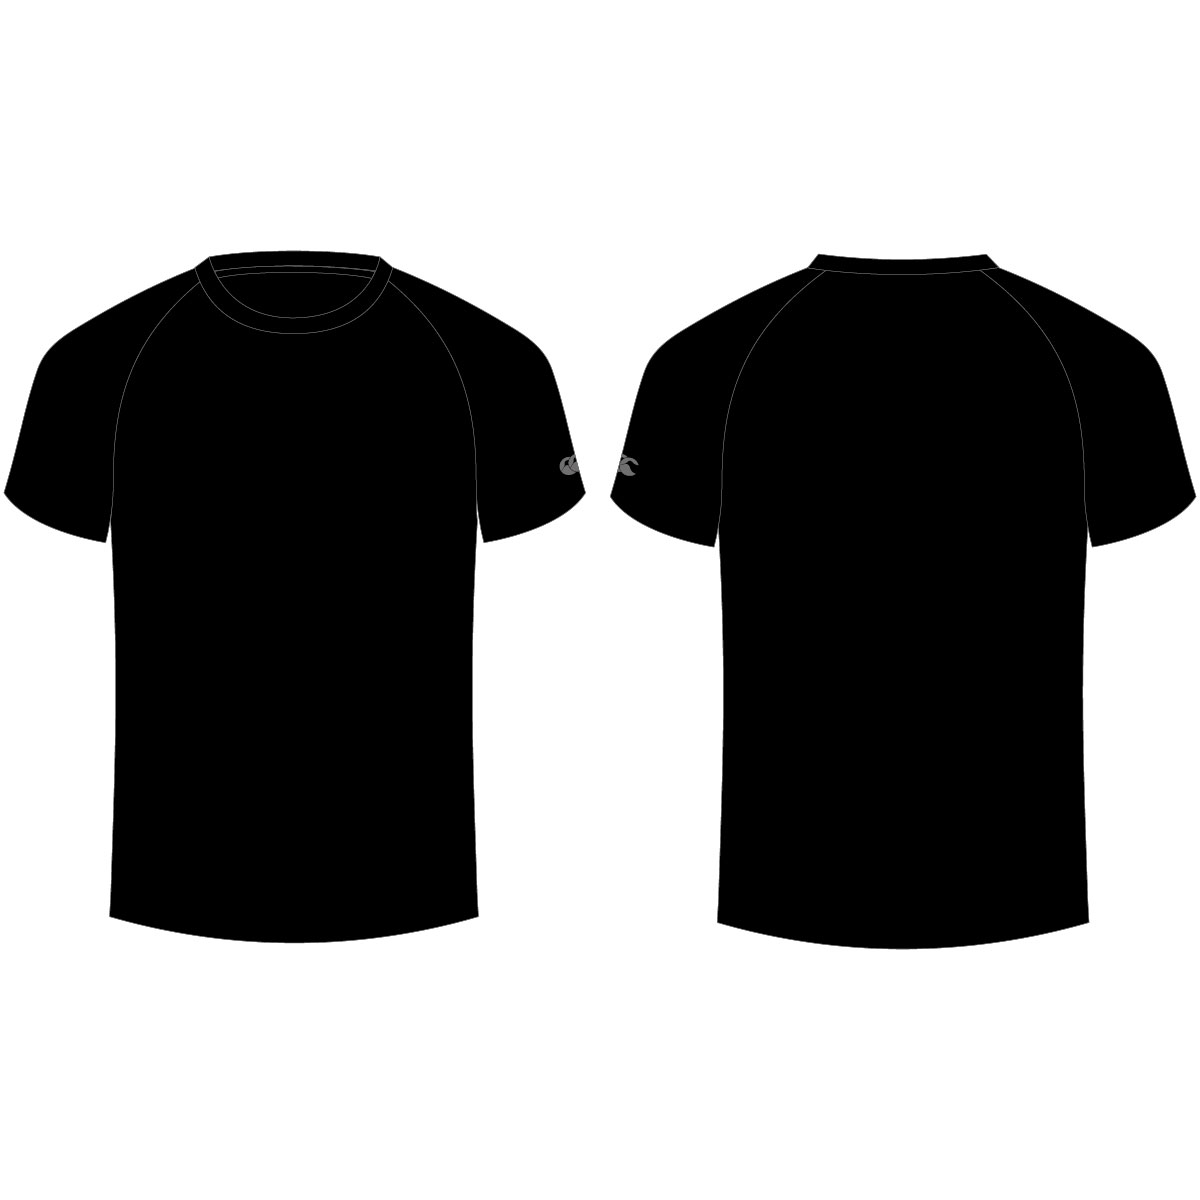 Plain Black T-shirt Front And Back - ClipArt Best